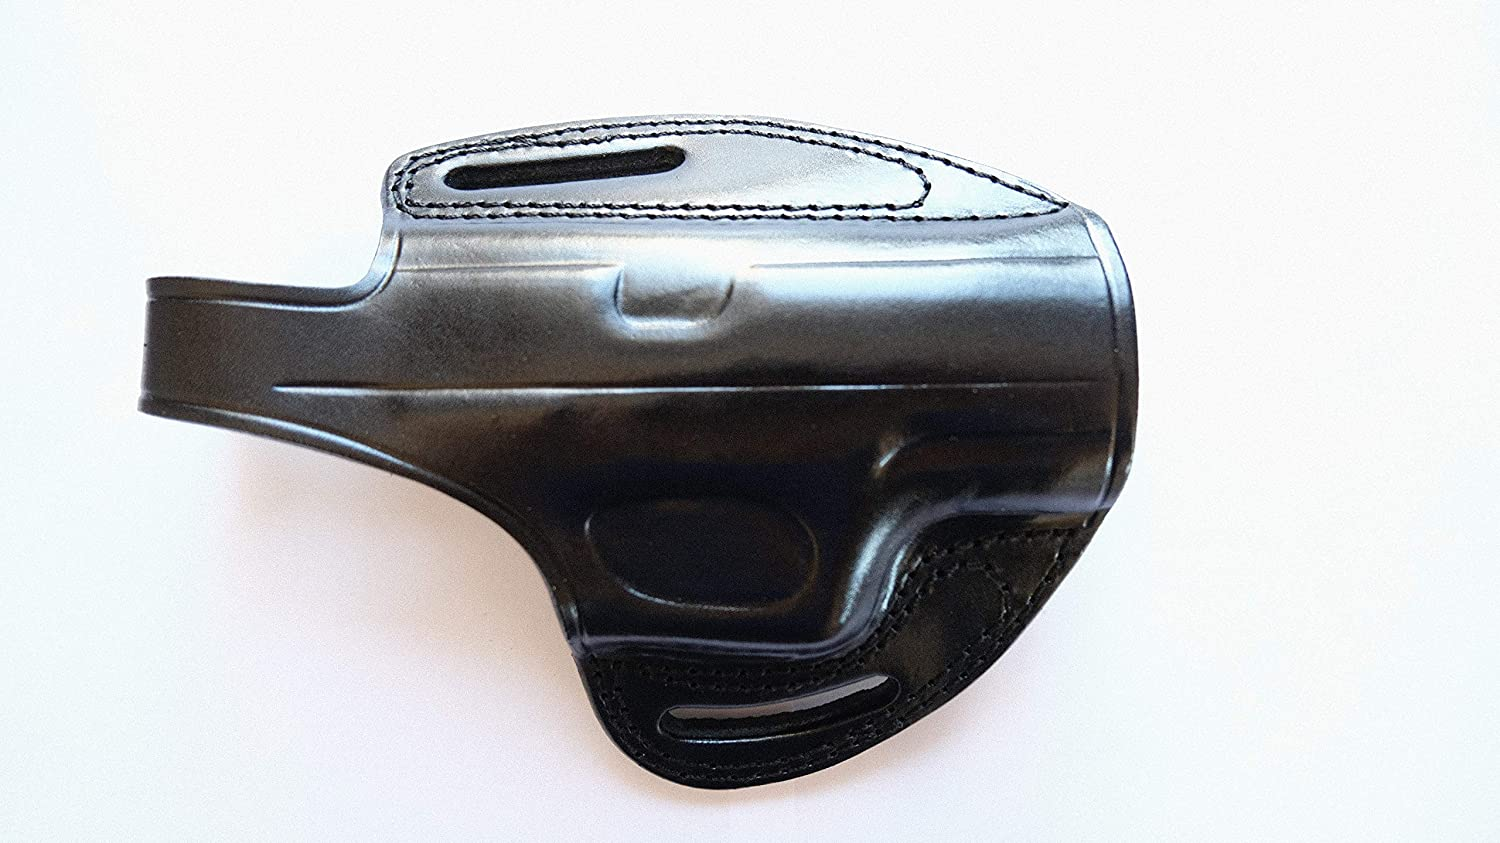 Cal38 Handcrafted Leather Belt Holster for Walther PPQ